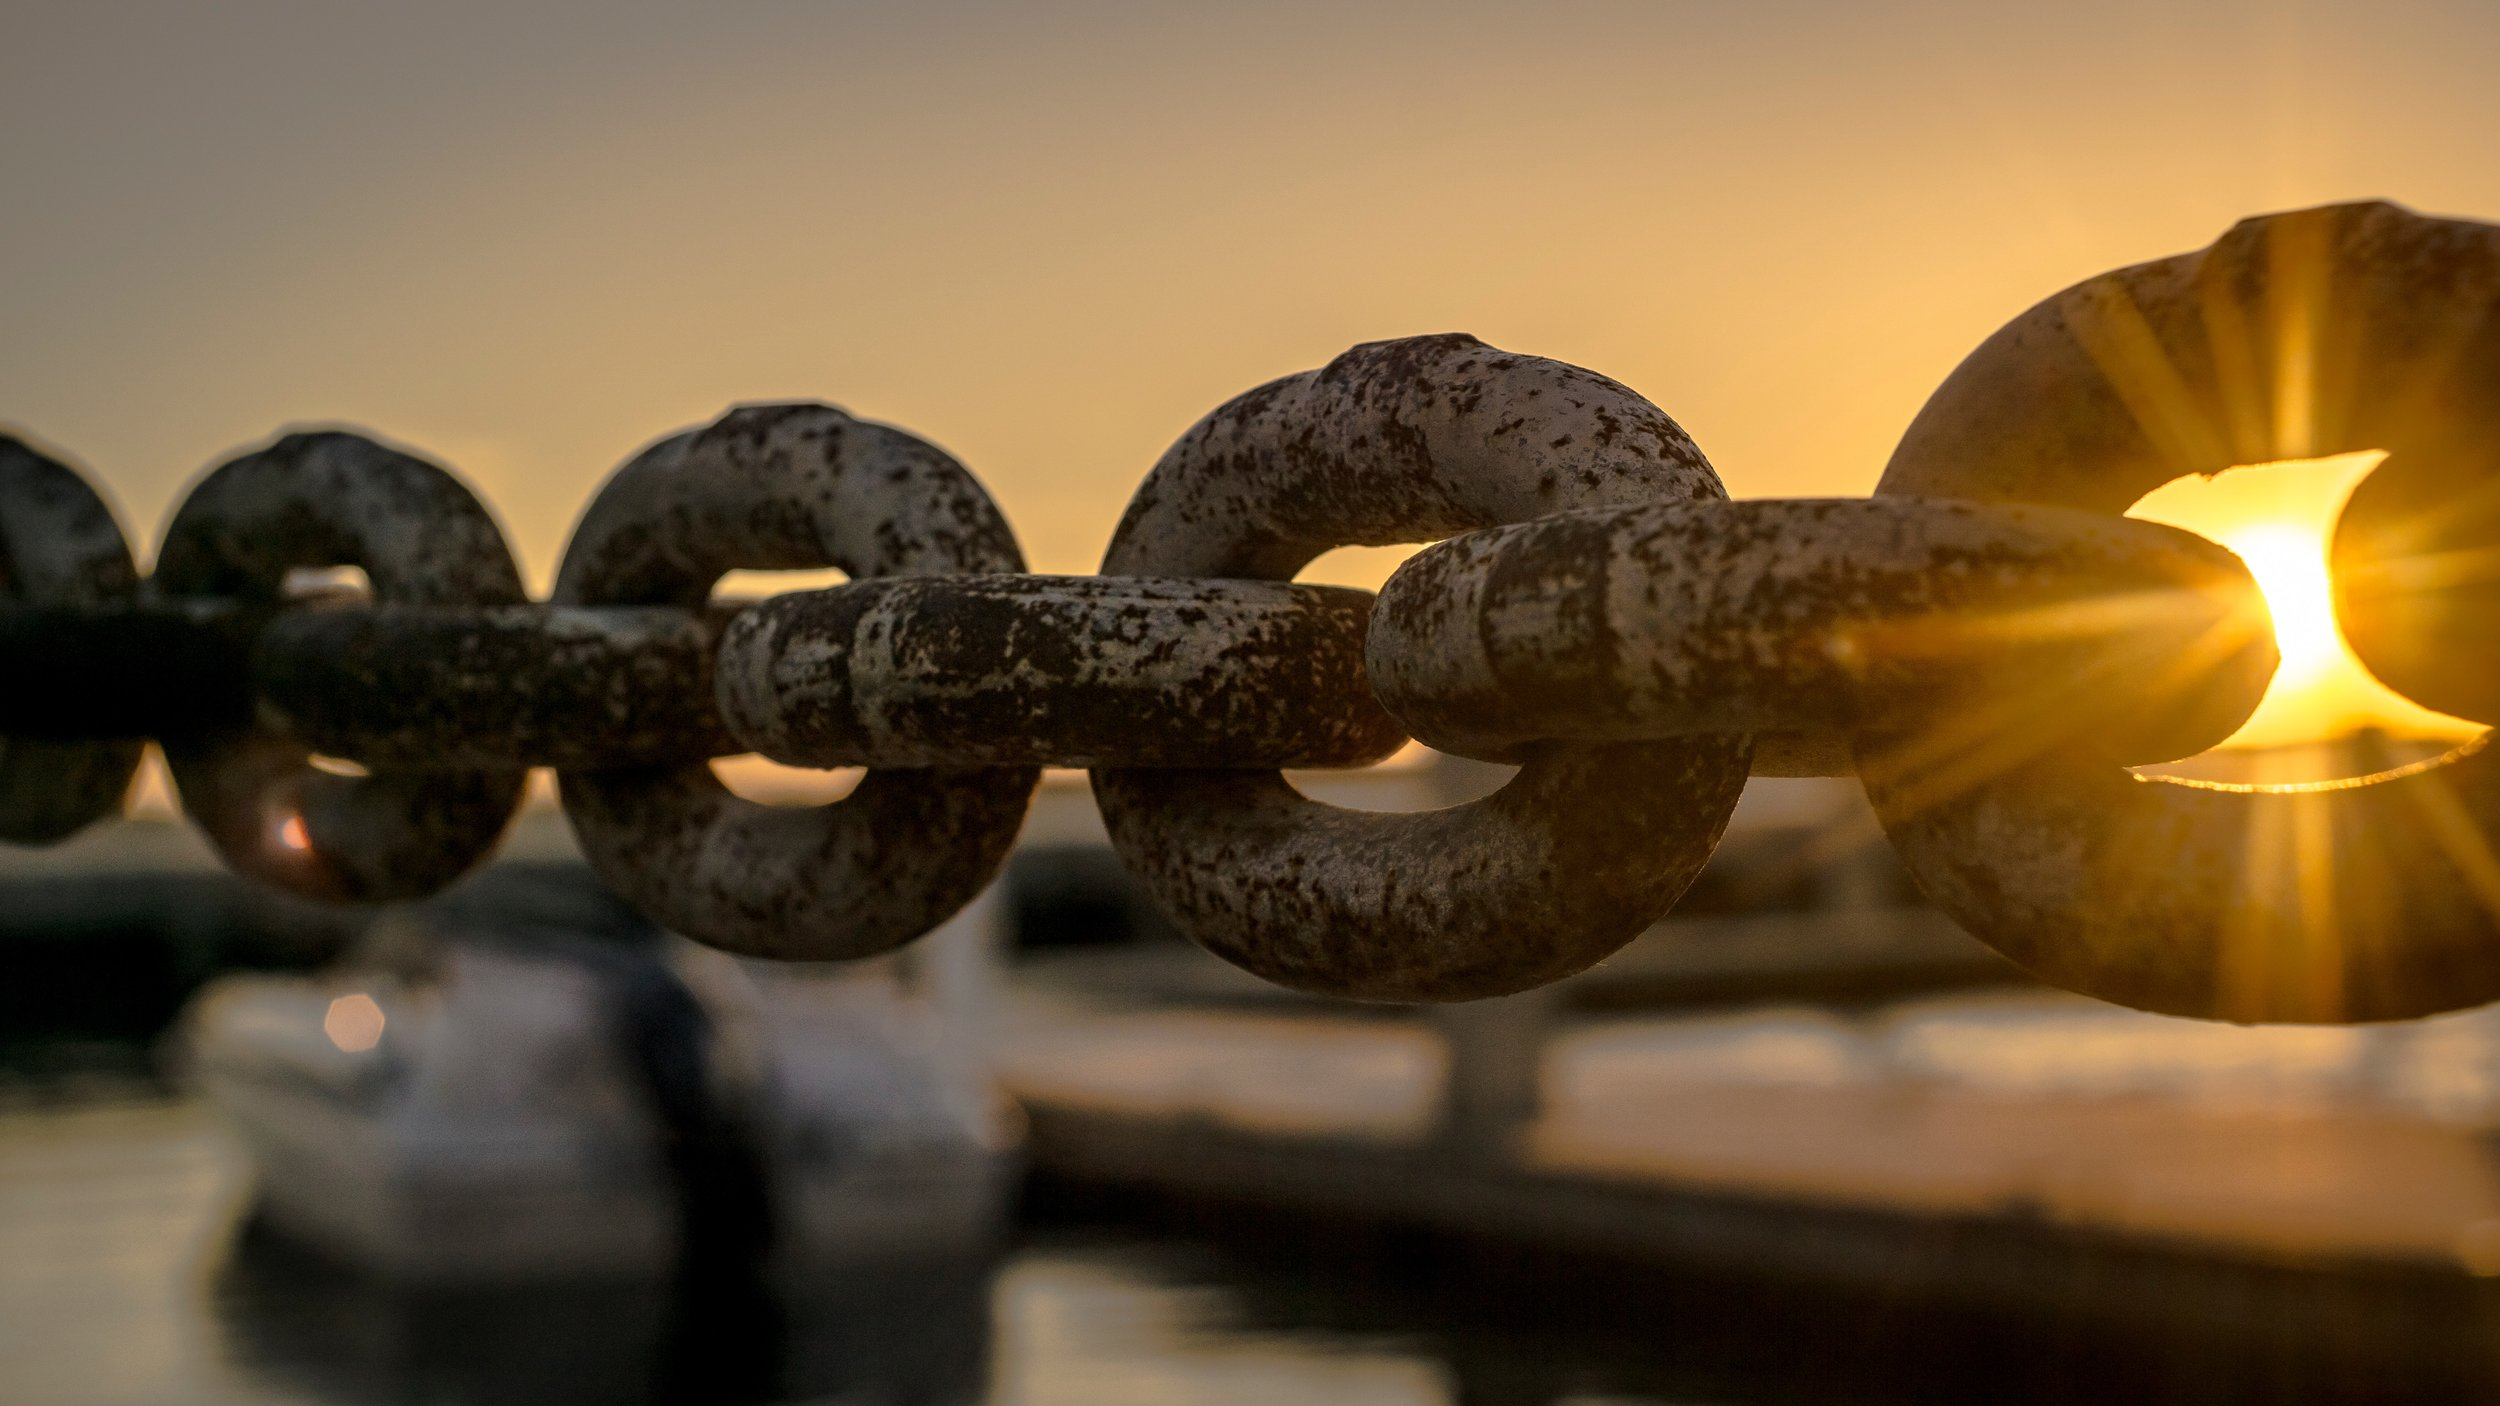 boat-chain-dawn-119562.jpg